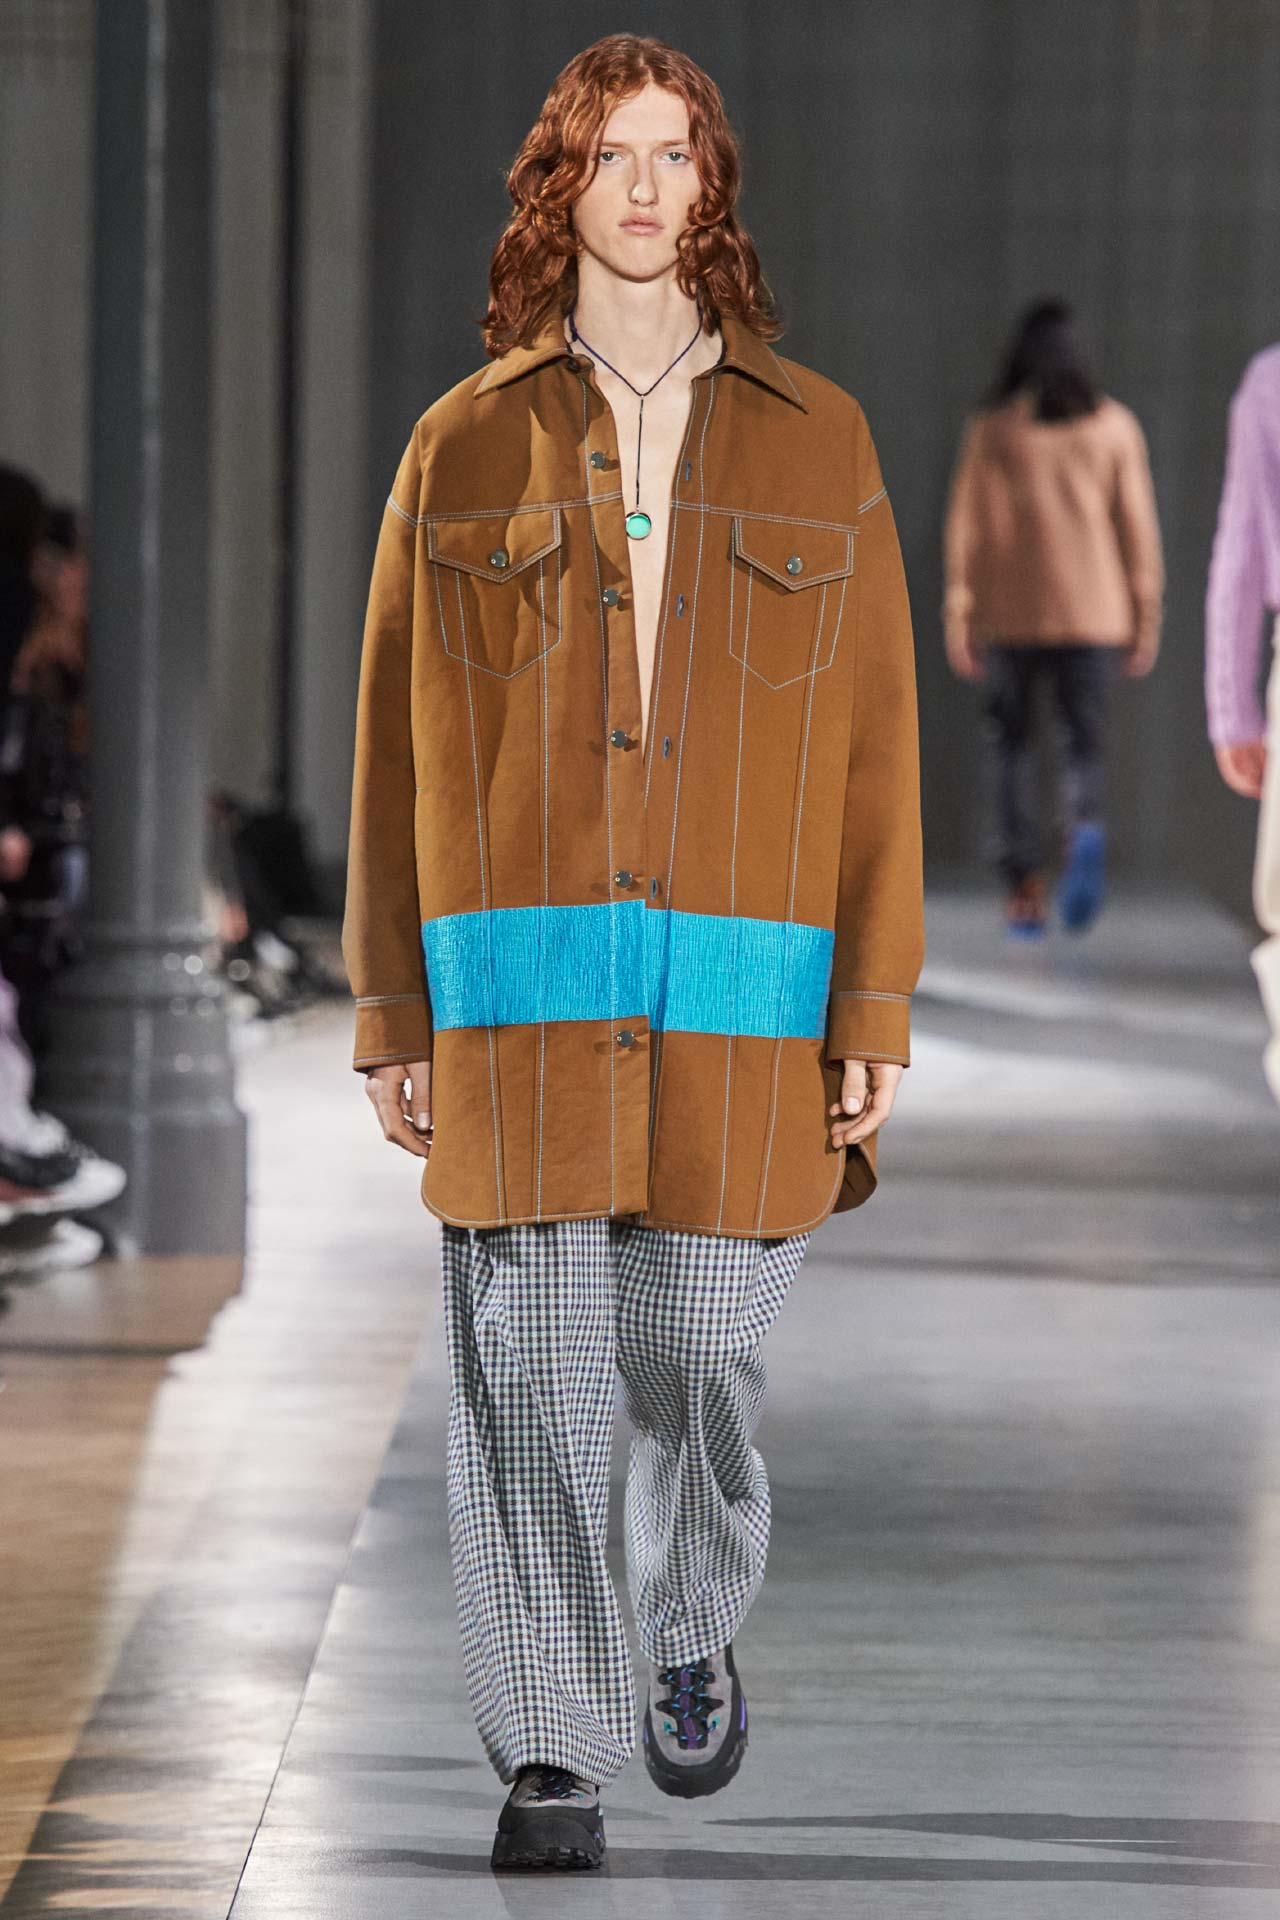 Look Fall/Winter 2019, image 25